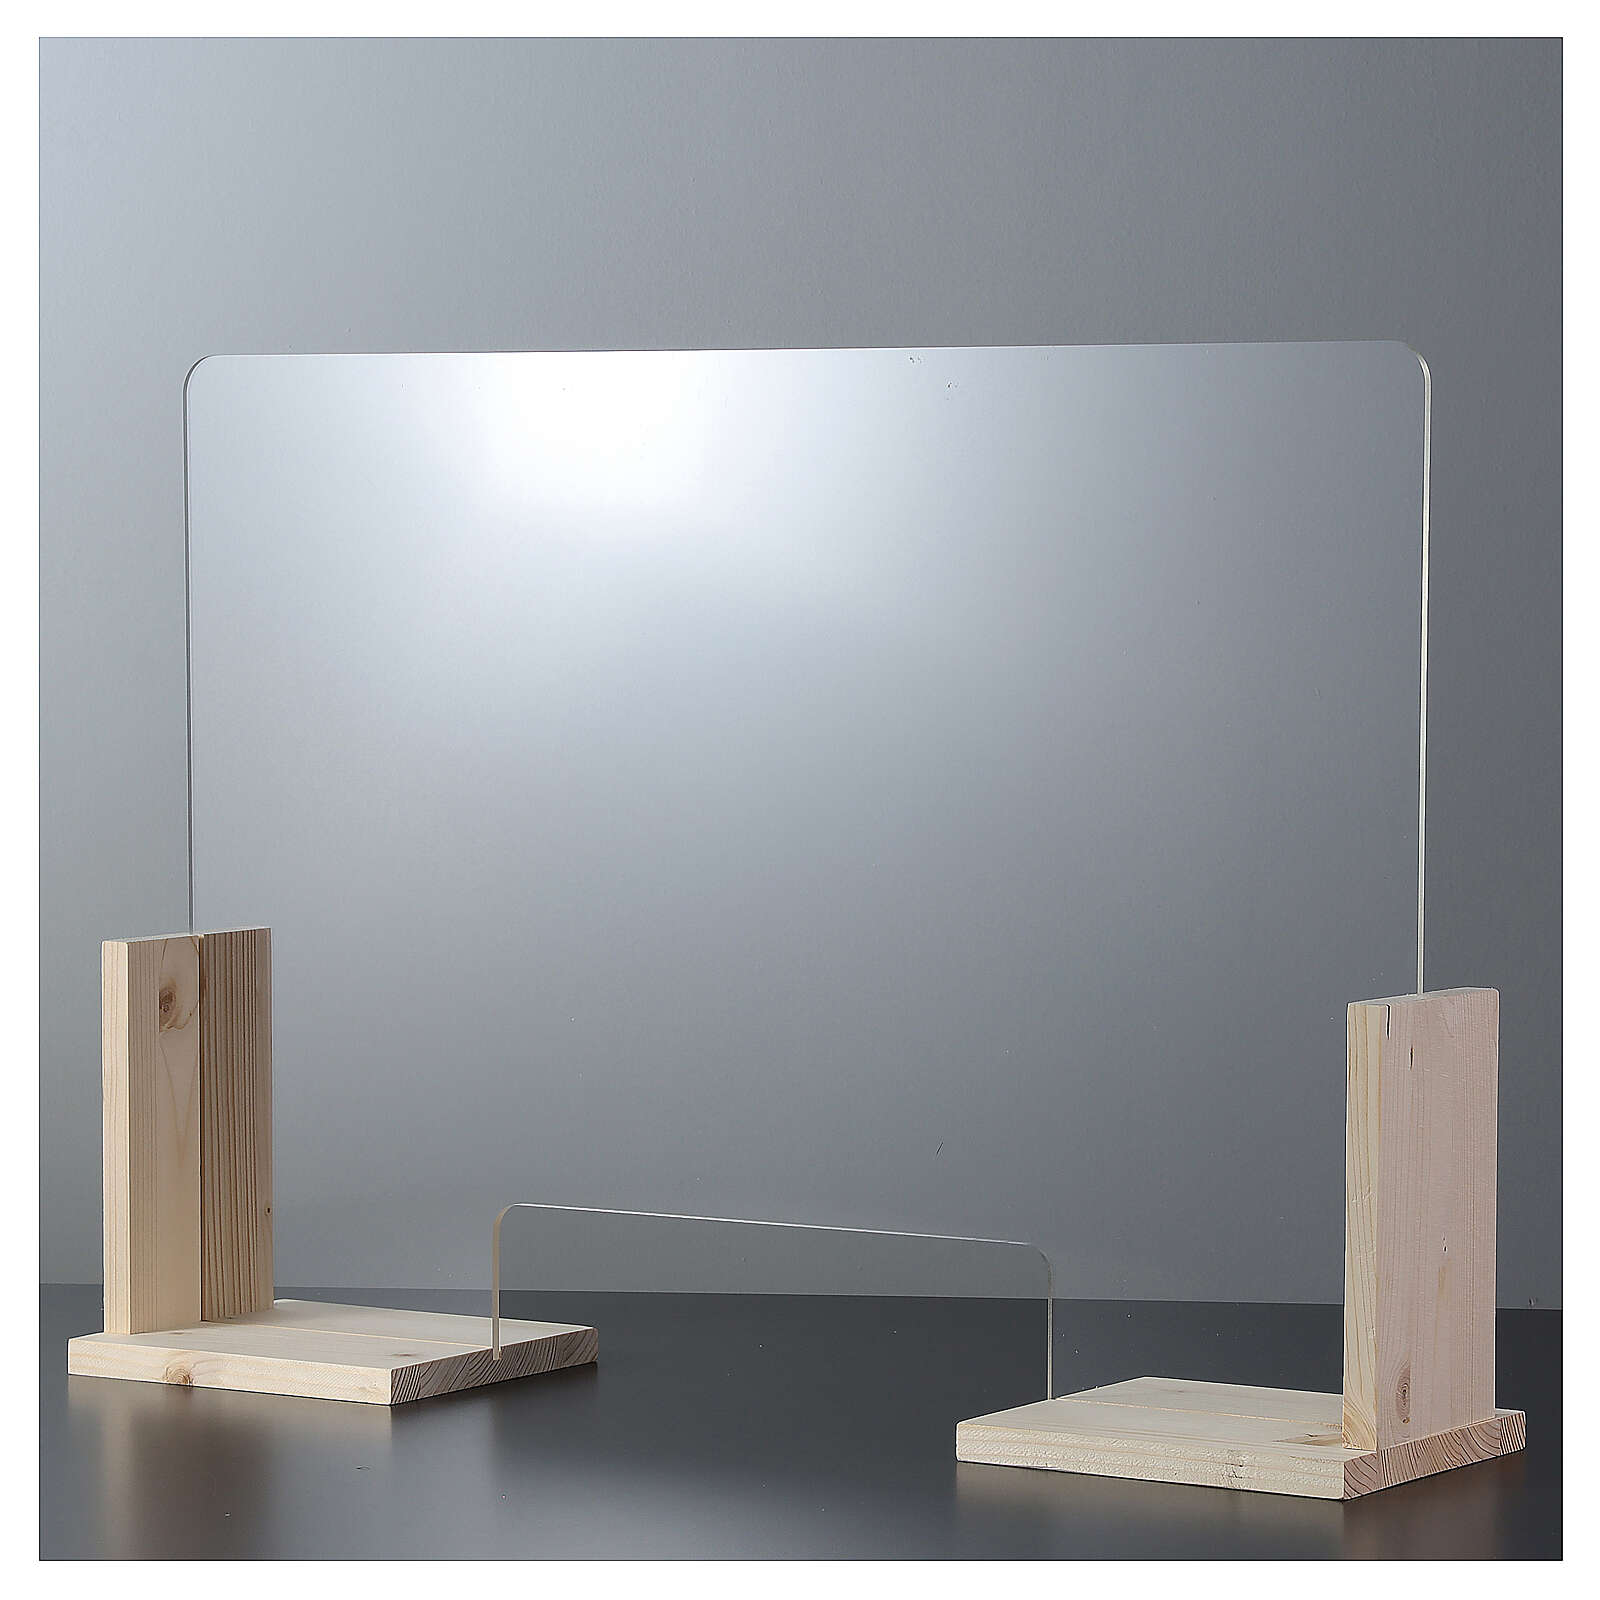 Plexiglass screen Wood Line, h 50x70 cm cutout window h 8x32 cm 3